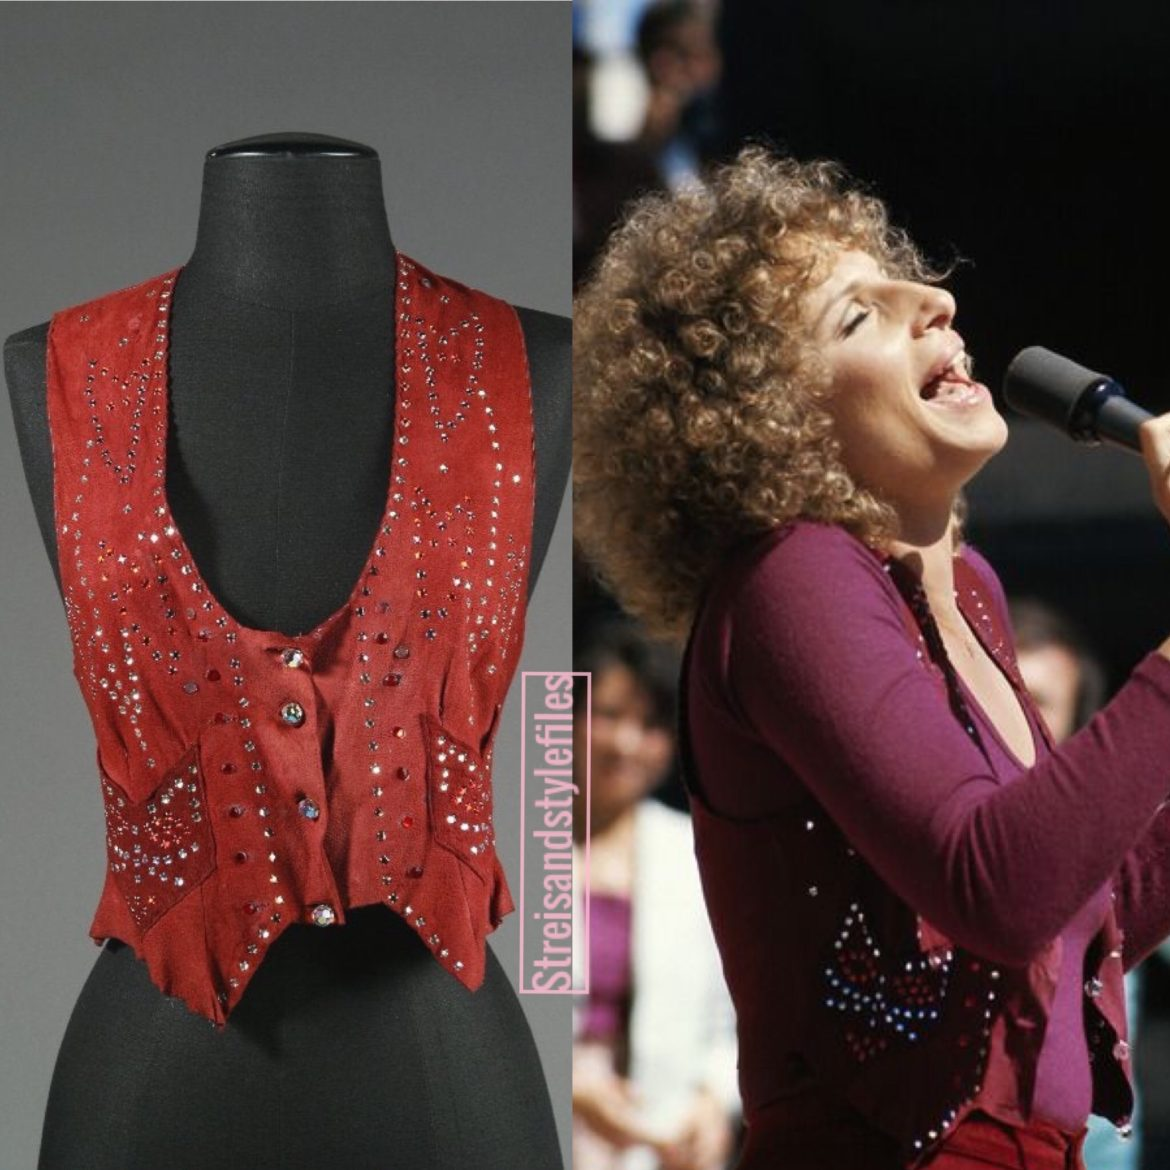 A Star Is Born Burgundy Suede Cat Vest